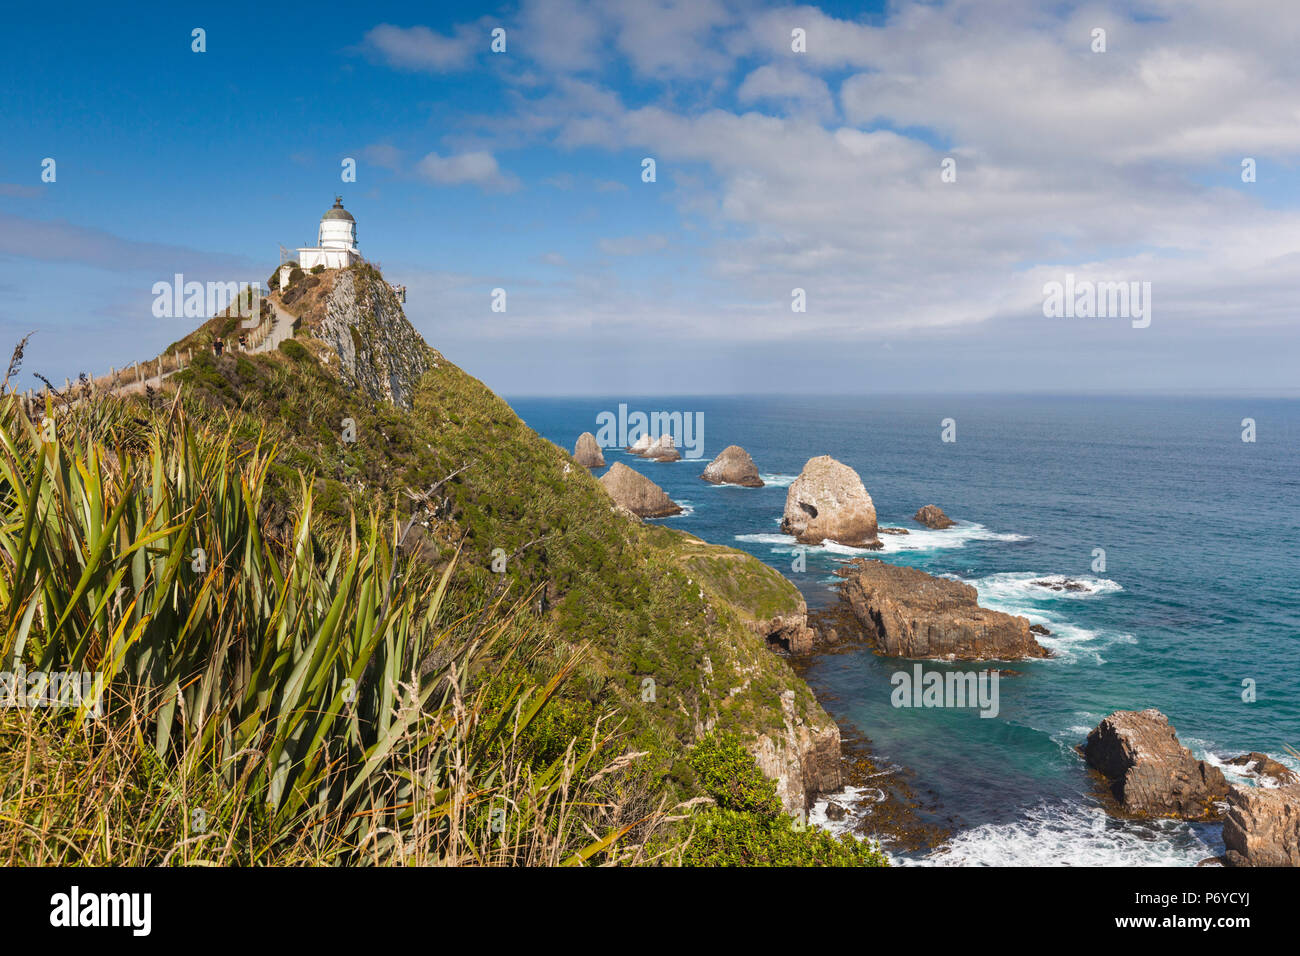 Nouvelle Zélande, île du Sud, Southland, le Nugget Point, Catlins, Nuggett Point LIghthouse, elevated view Photo Stock